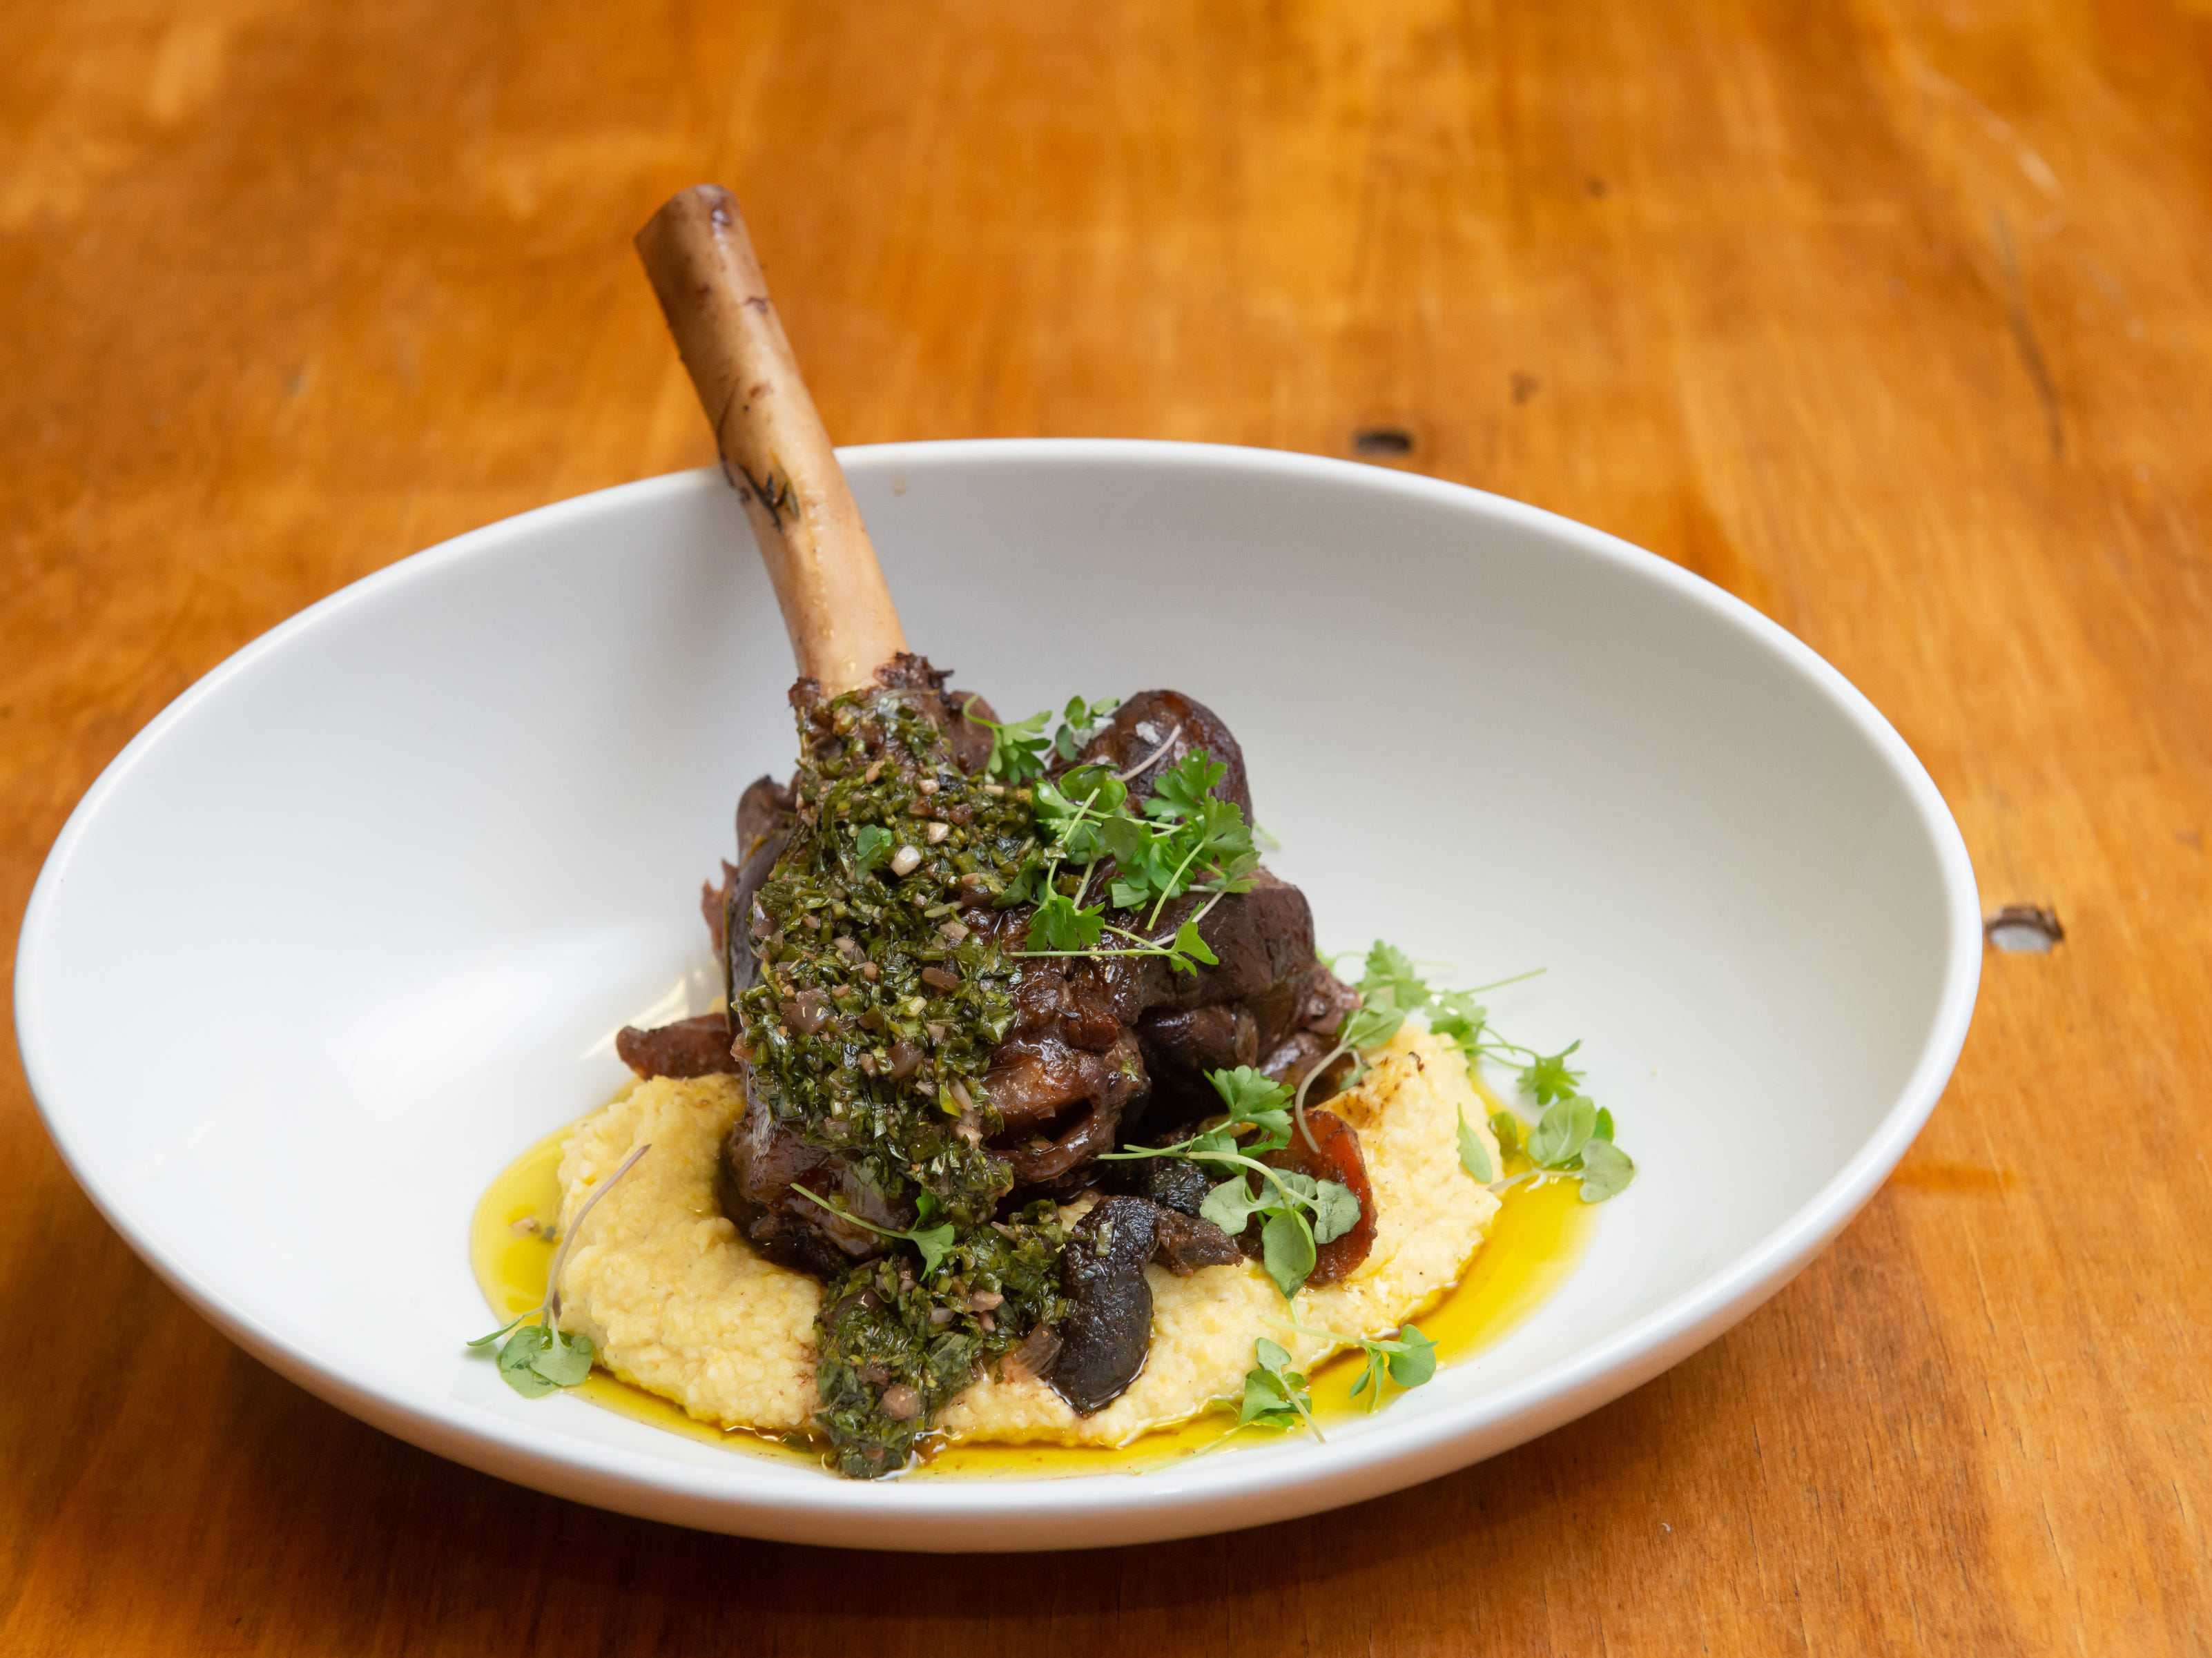 Main Course: Braised  Lamb Shank, Yellow Corn Polenta, Roasted Carrots and Mint Chimichurri at the James Beard Foundation Celebrity Chef Dinner held at the Brevard Zoo. (Photo by Amanda Stratford, for FLORIDA TODAY)